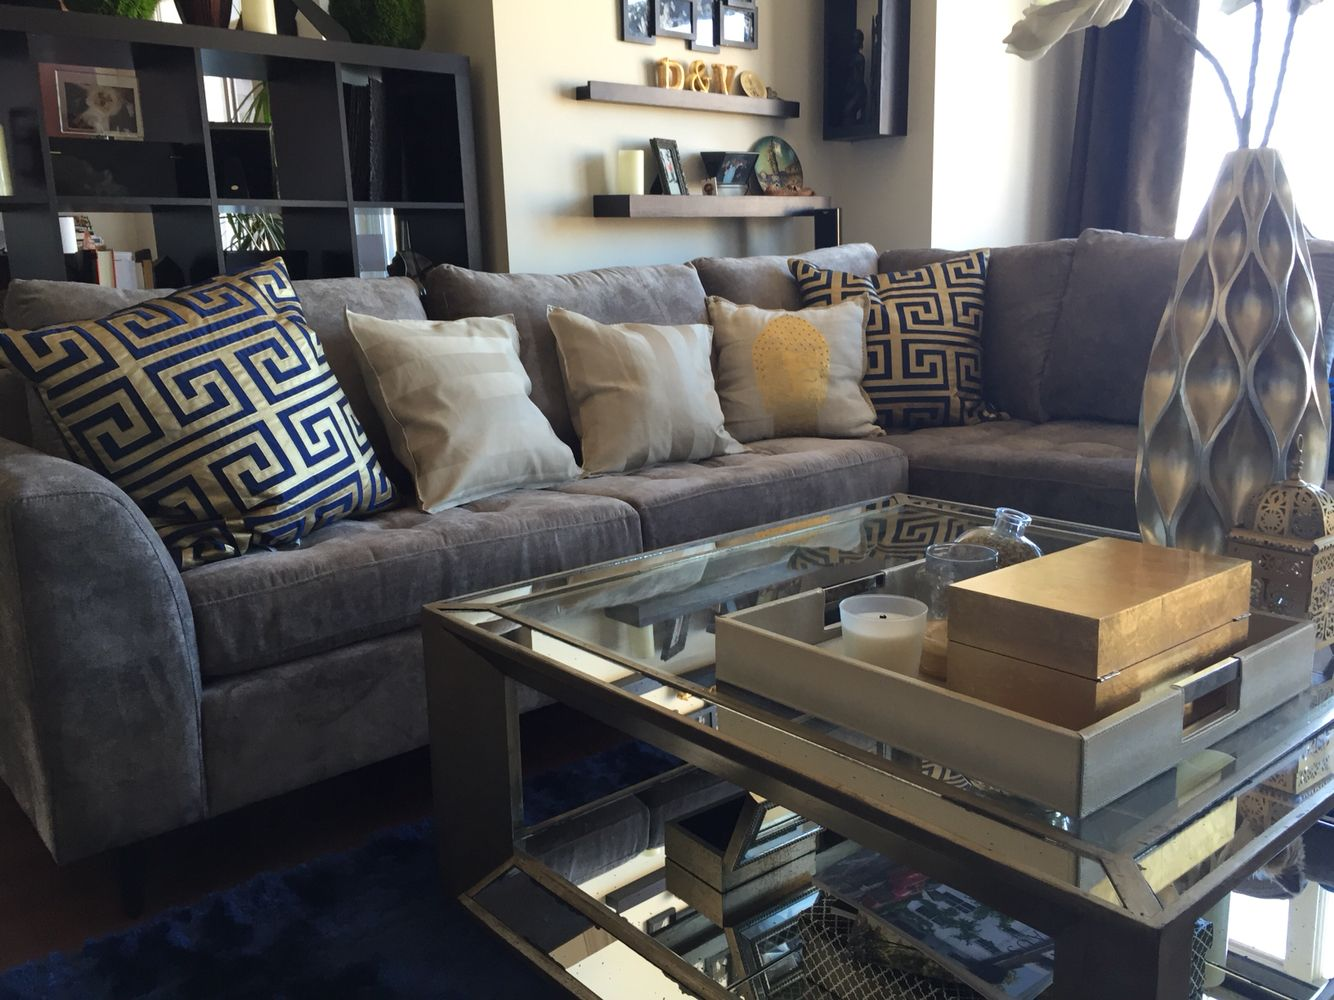 Love my new furniture dania lux couch z gallerie table living